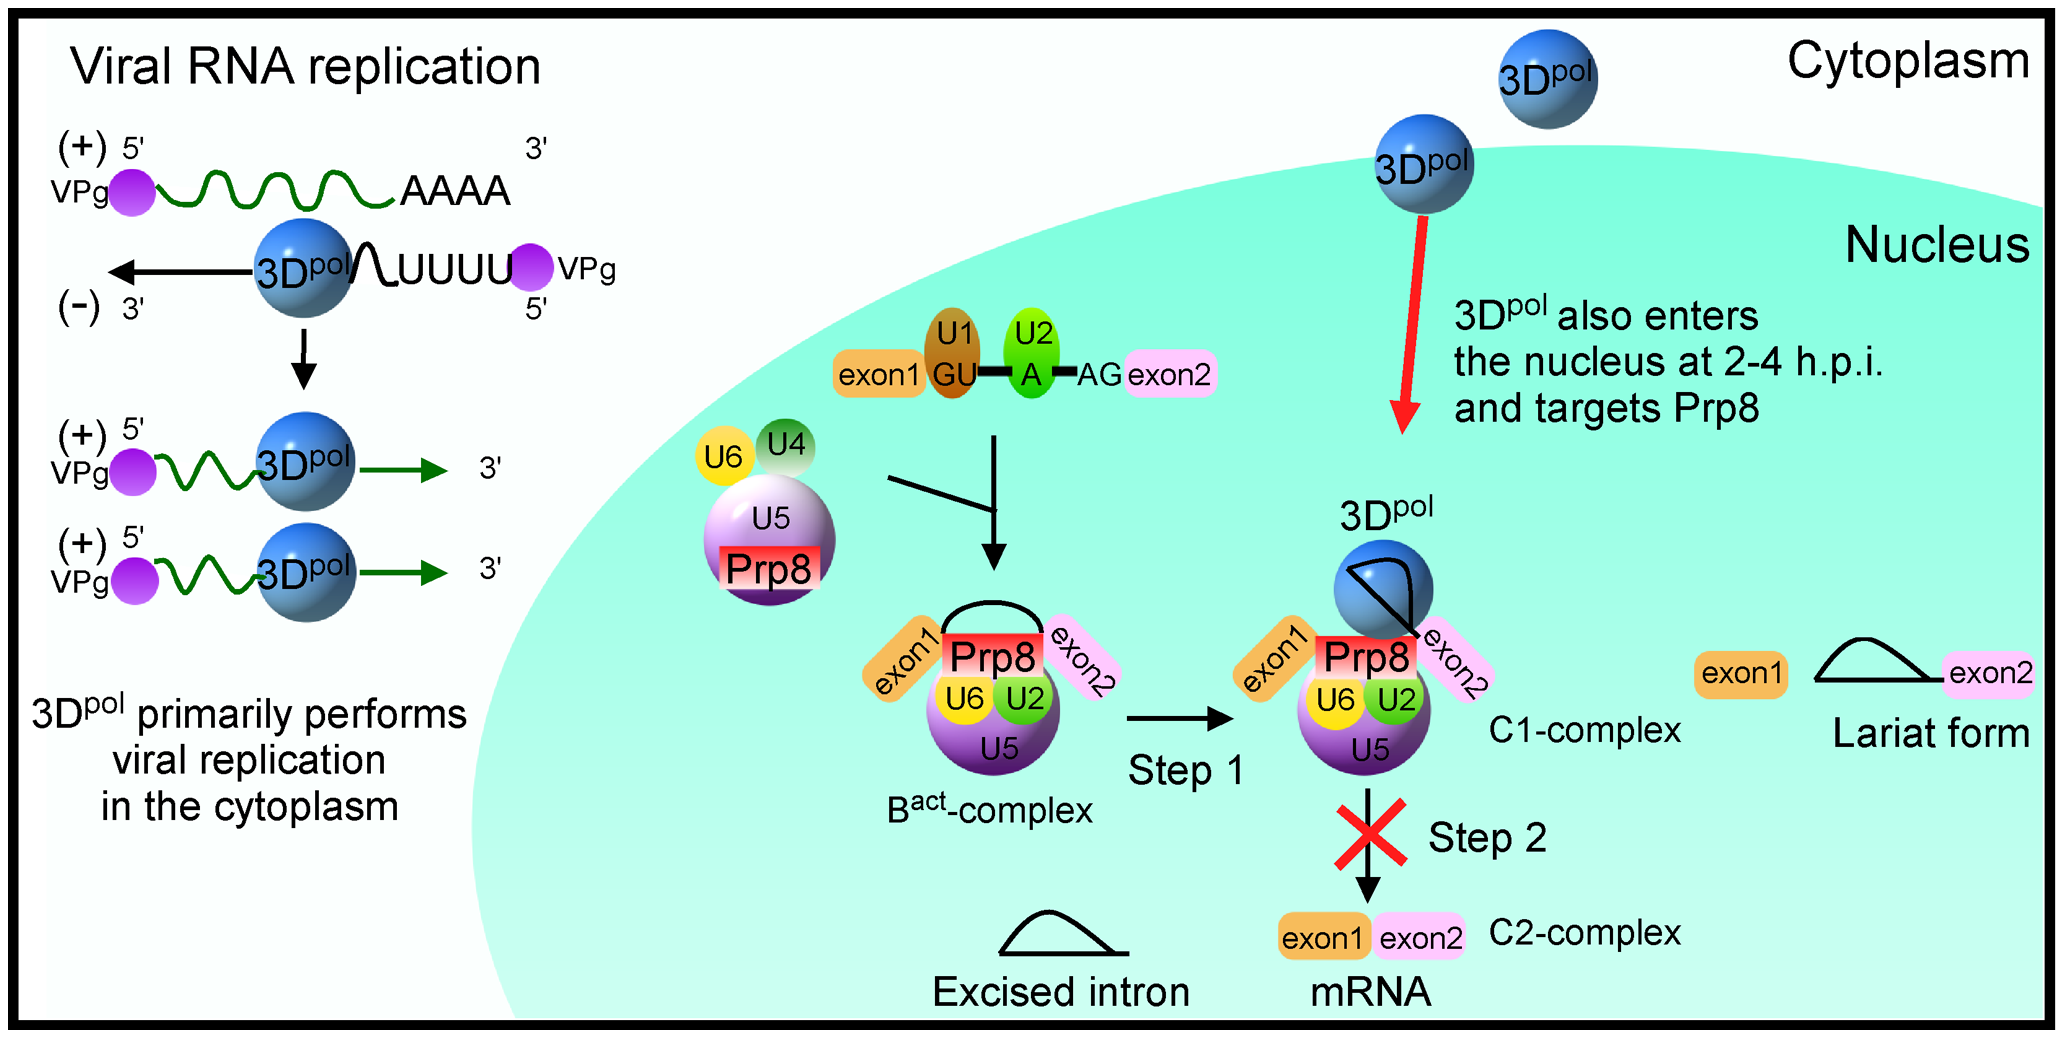 Schematic model of 3D<sup>pol</sup>-mediated inhibition of the cellular splicing by targeting Prp8 in the nucleus.